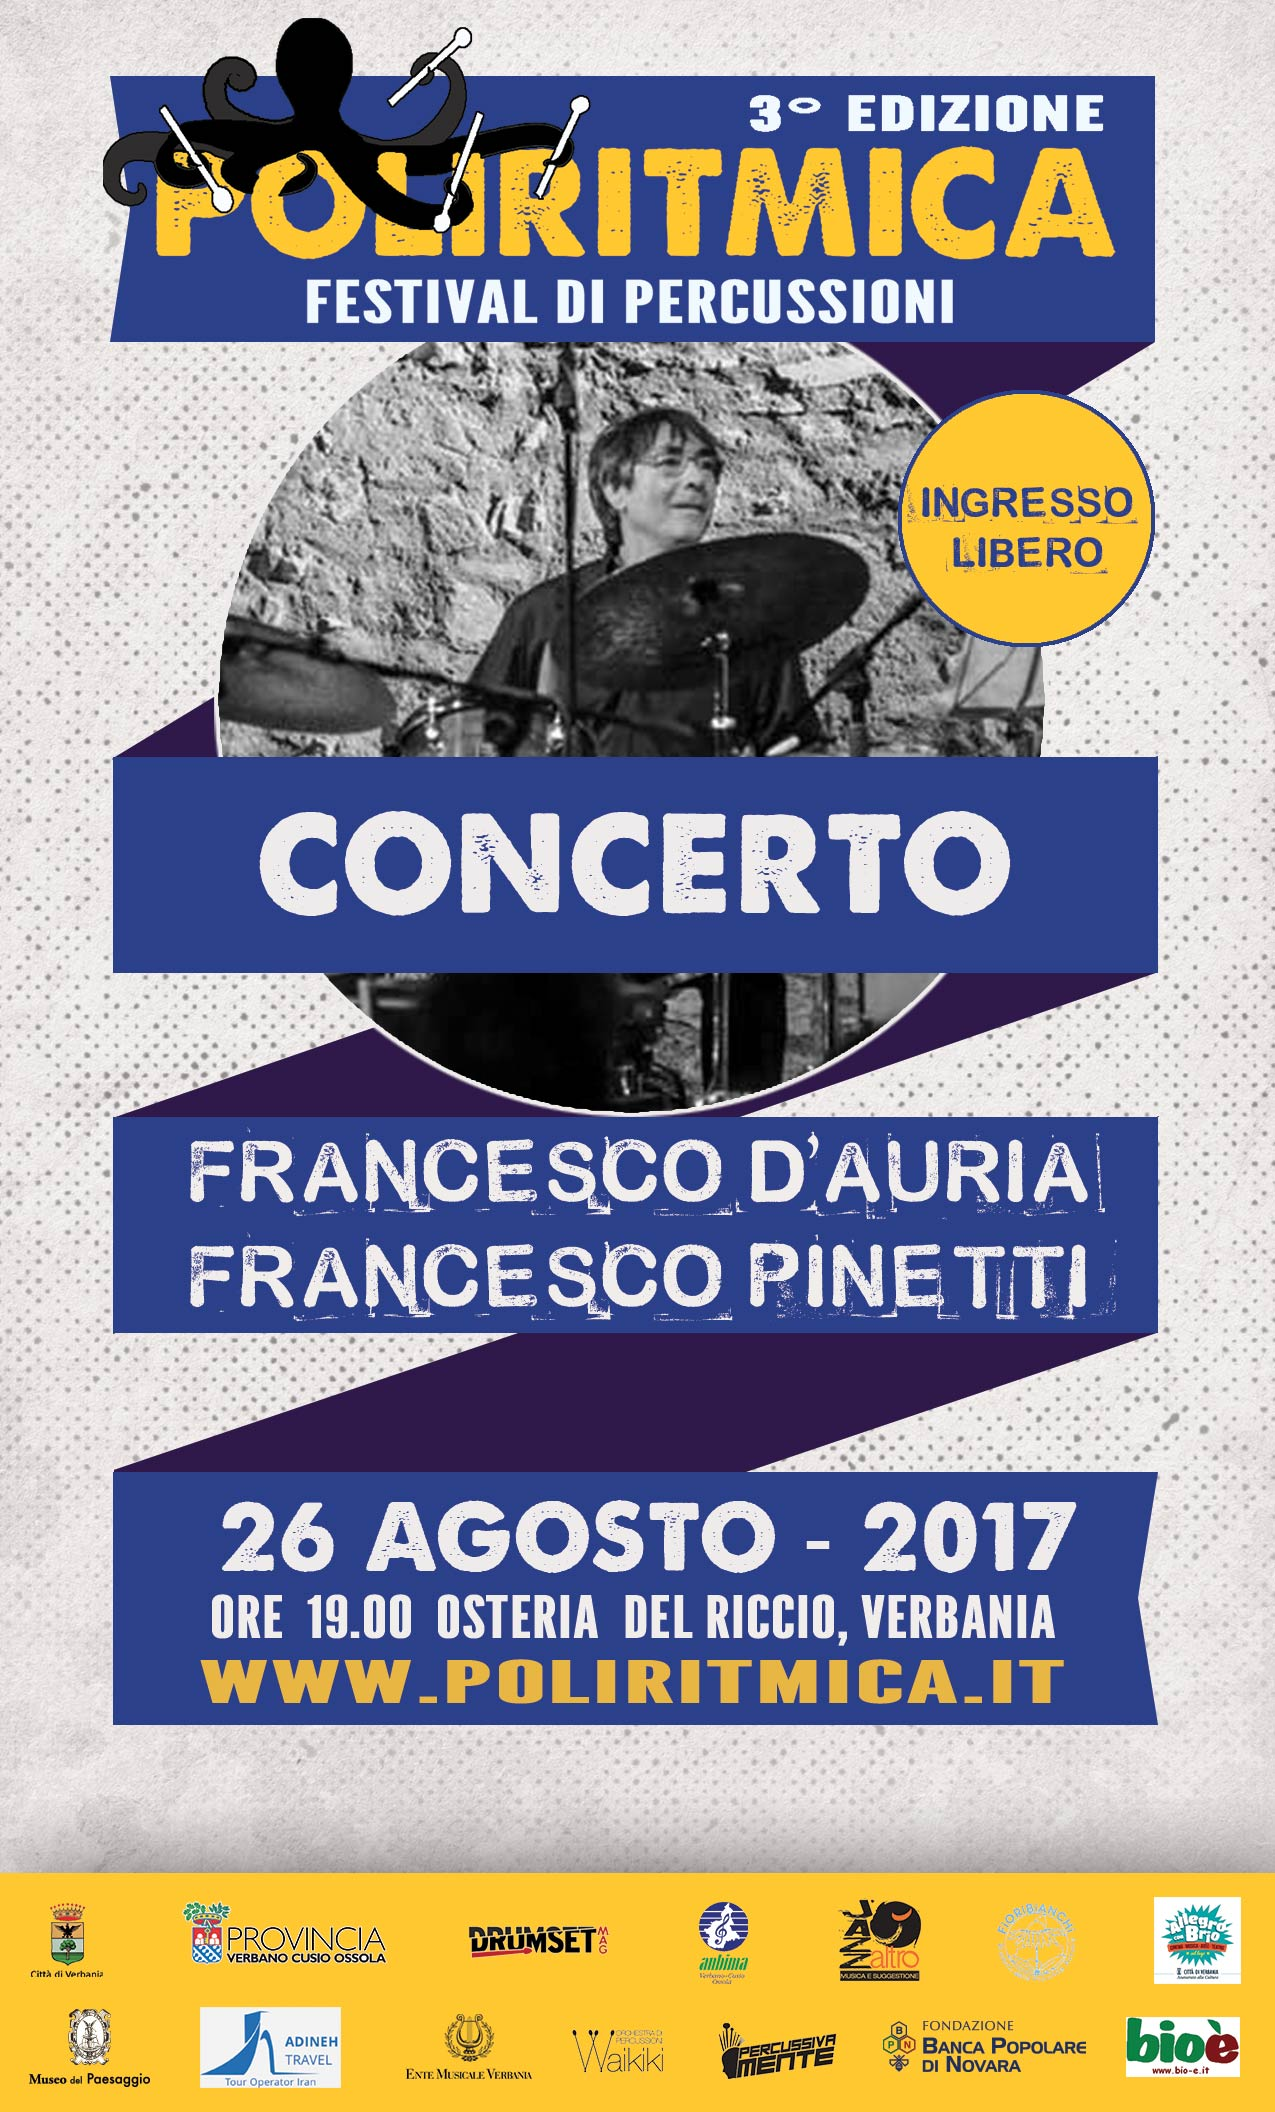 26 agosto h 20 francesco d'auria duo